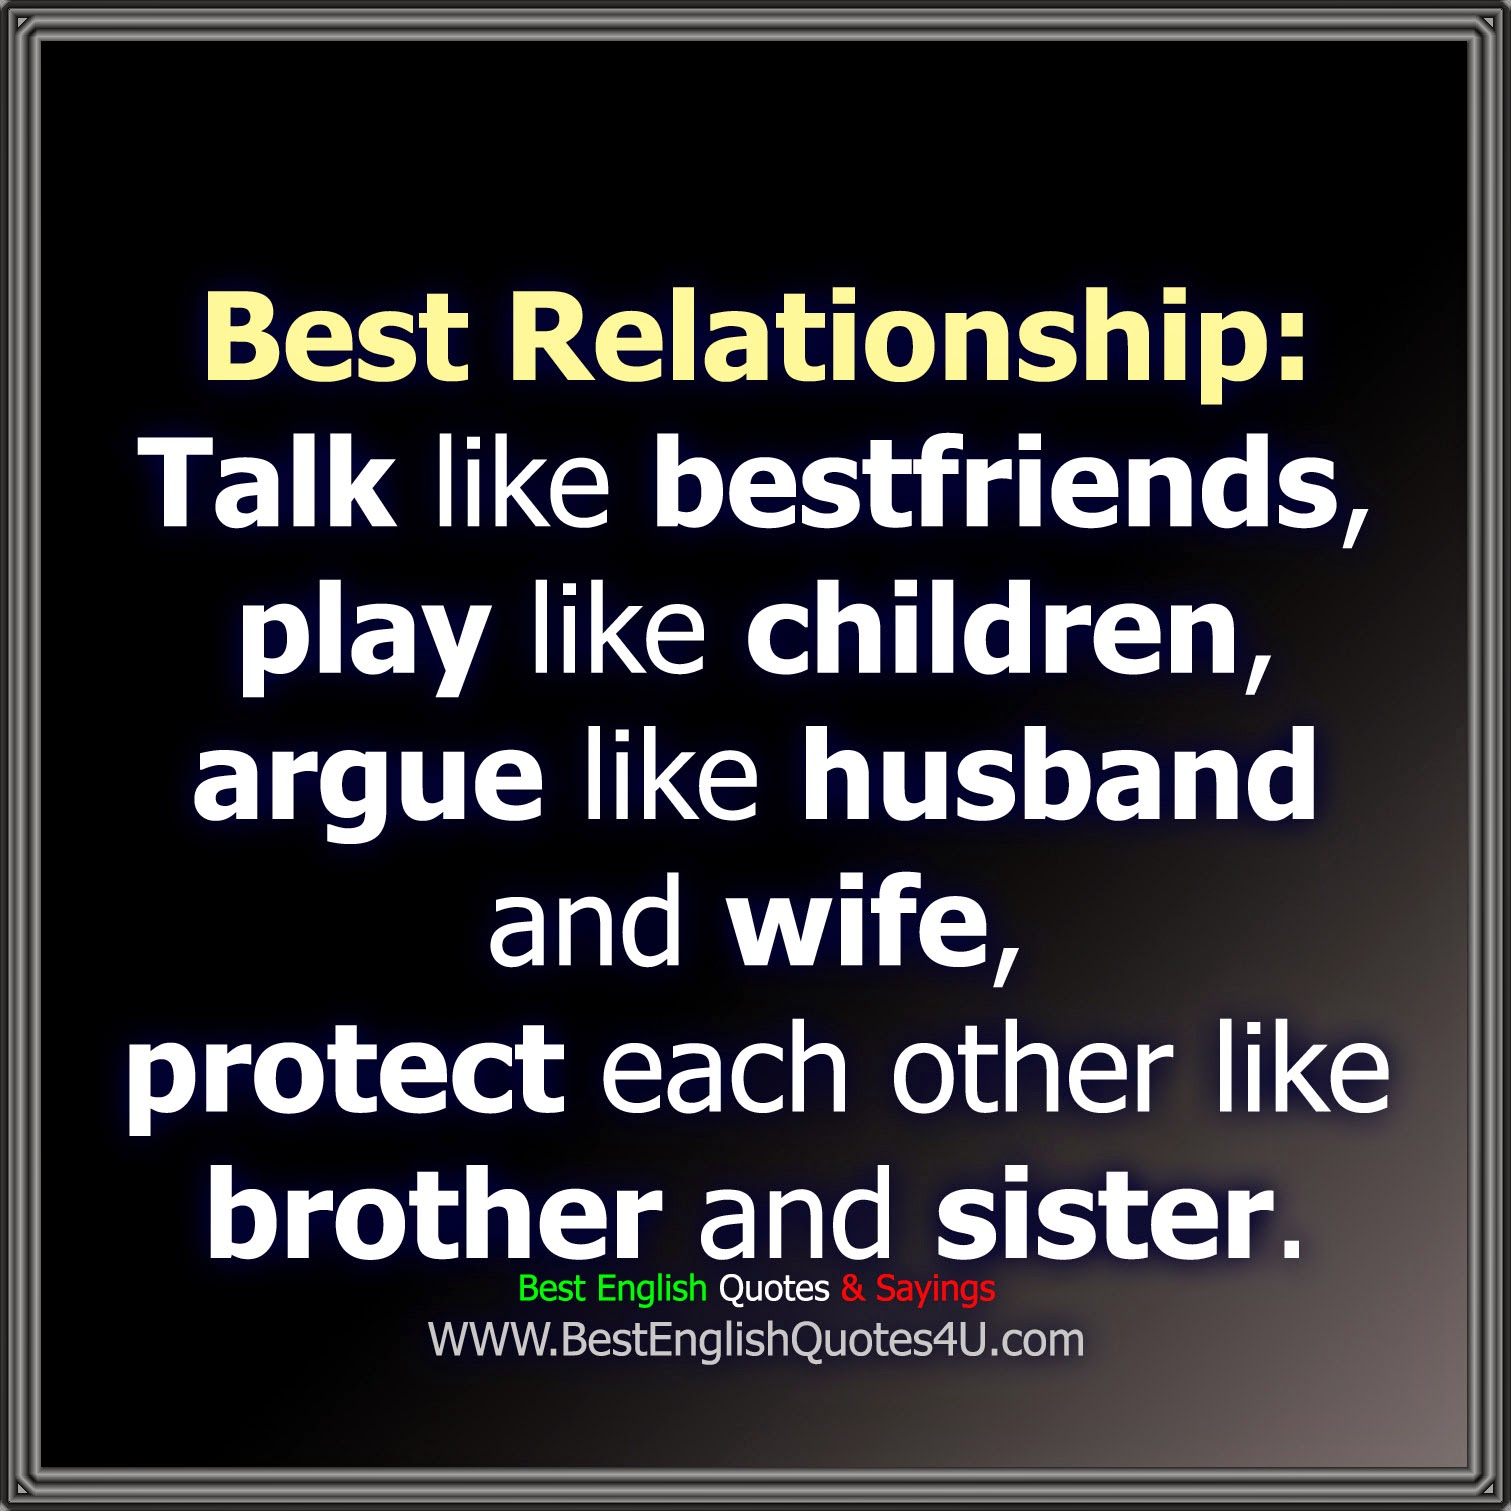 Best Relationship Quotes Best Relationship  Best'english'quotes'&'sayings